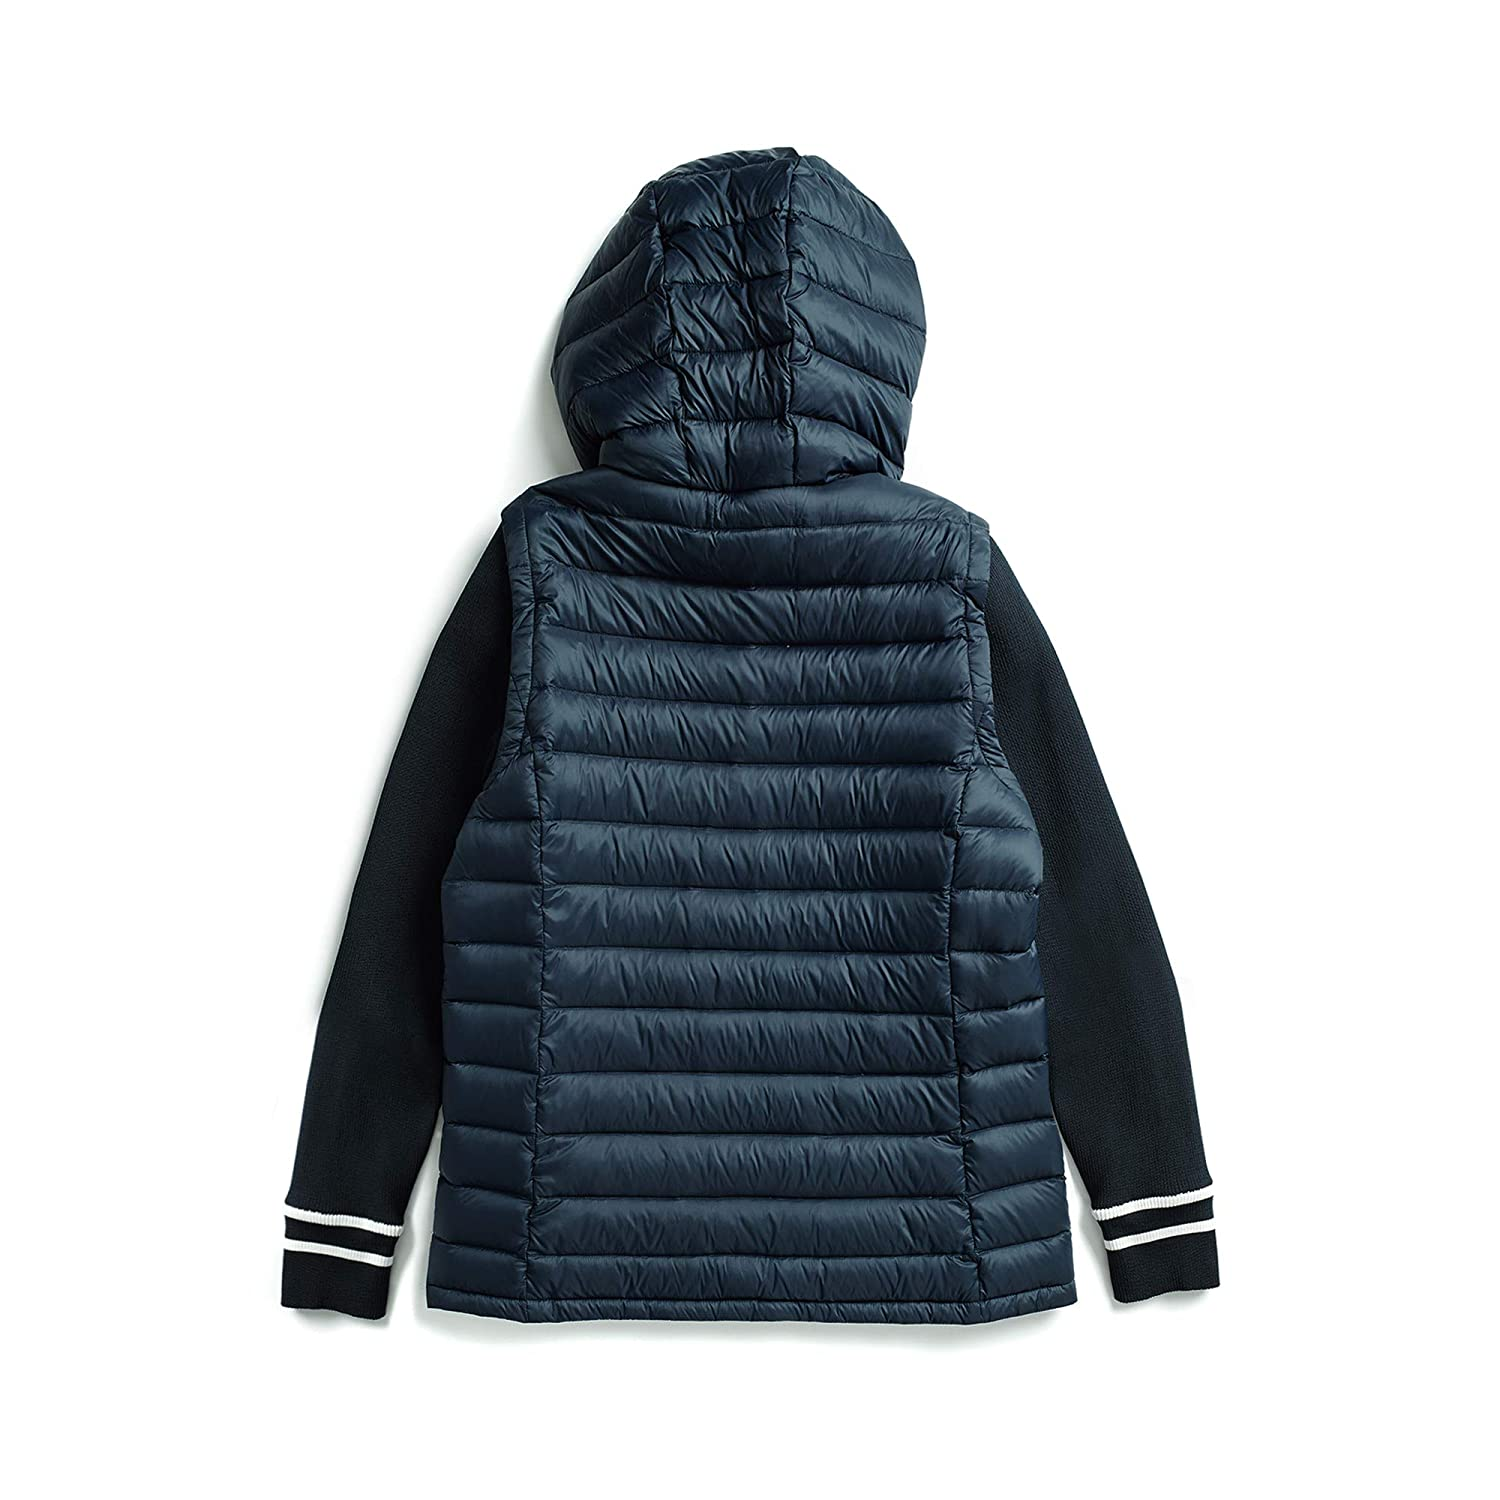 b9d82fa68 Tommy Hilfiger Women's Adaptive Puffer Jacket with Knit Sleeves and ...